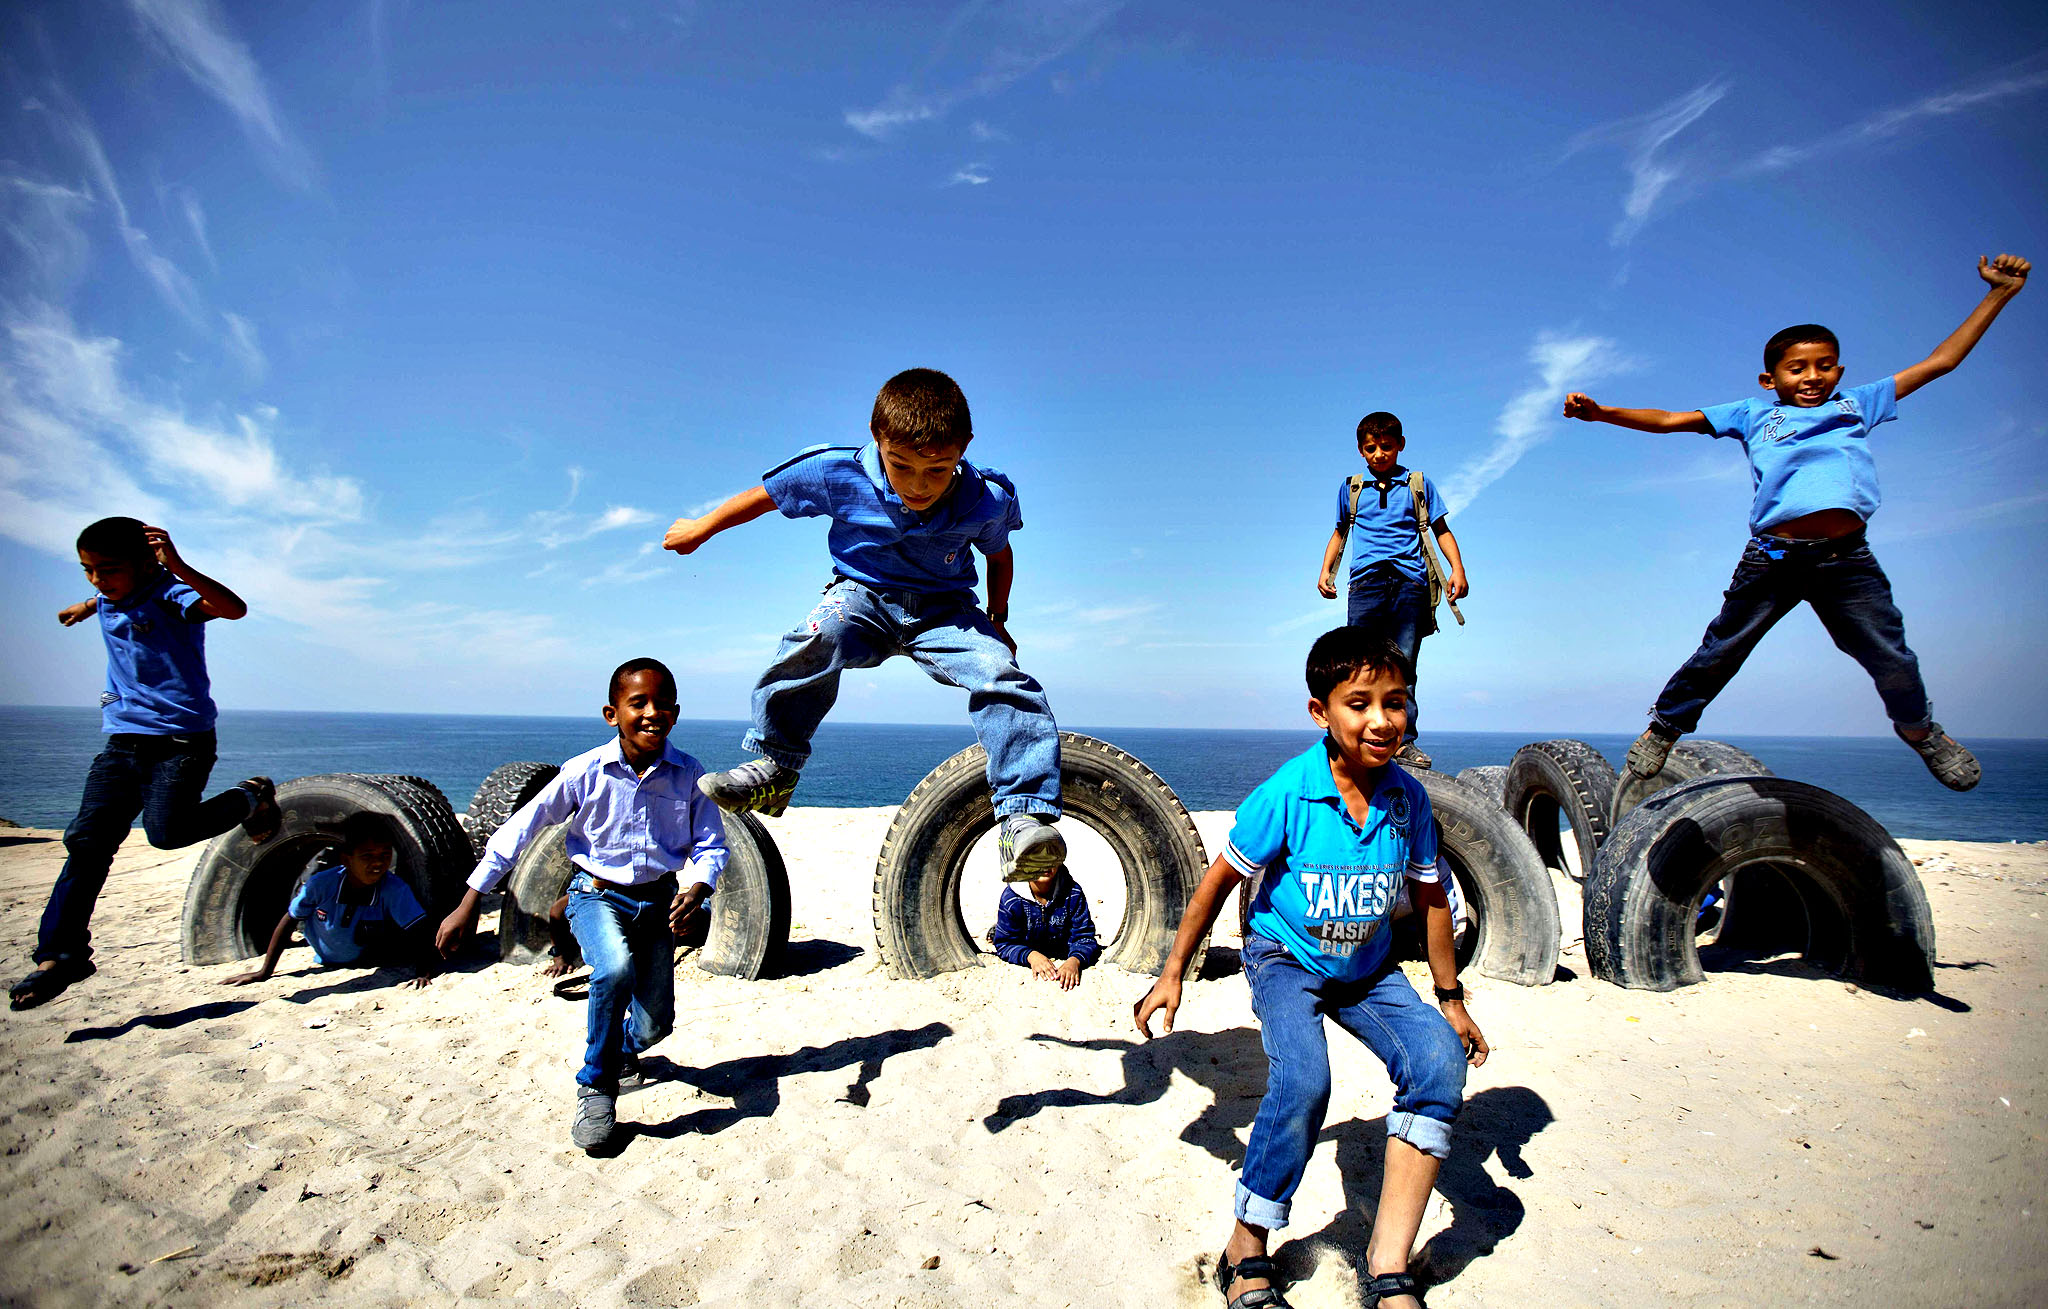 Palestinian school children play with tyres on ??Gaza beach on October 24, 2013 in Deir al-Balah.